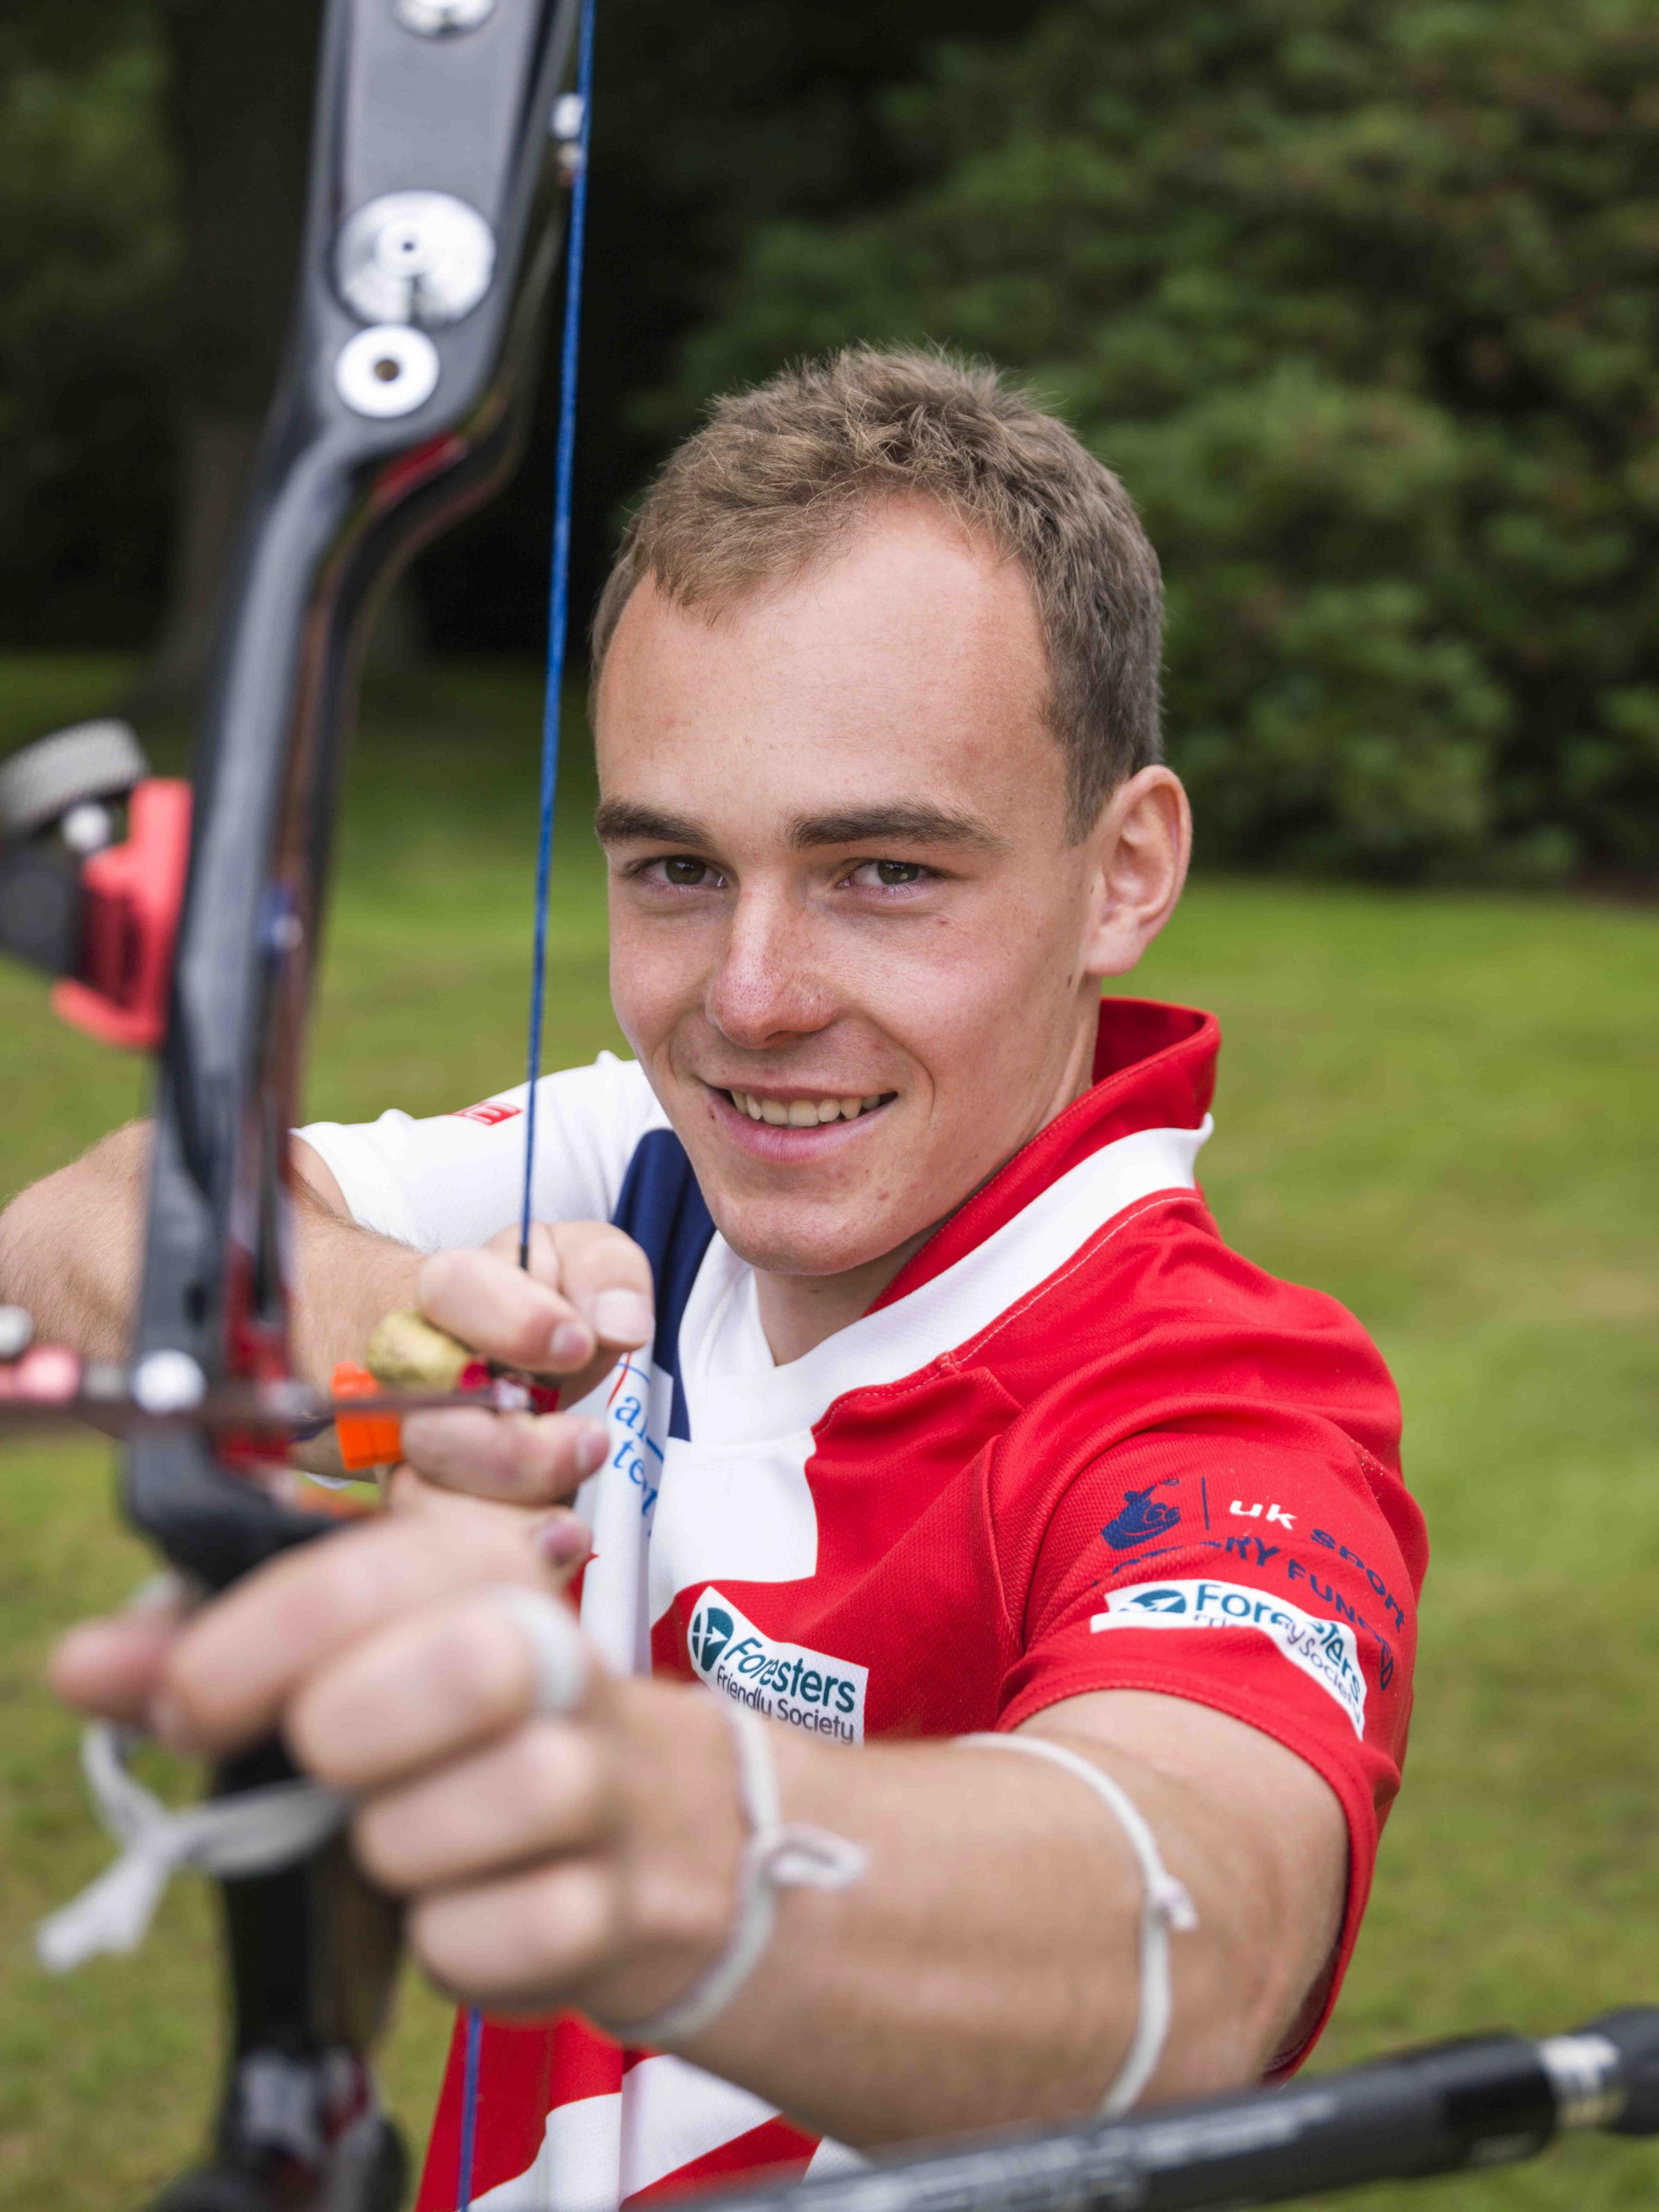 Archery: Slater to represent Great Britain in Moscow